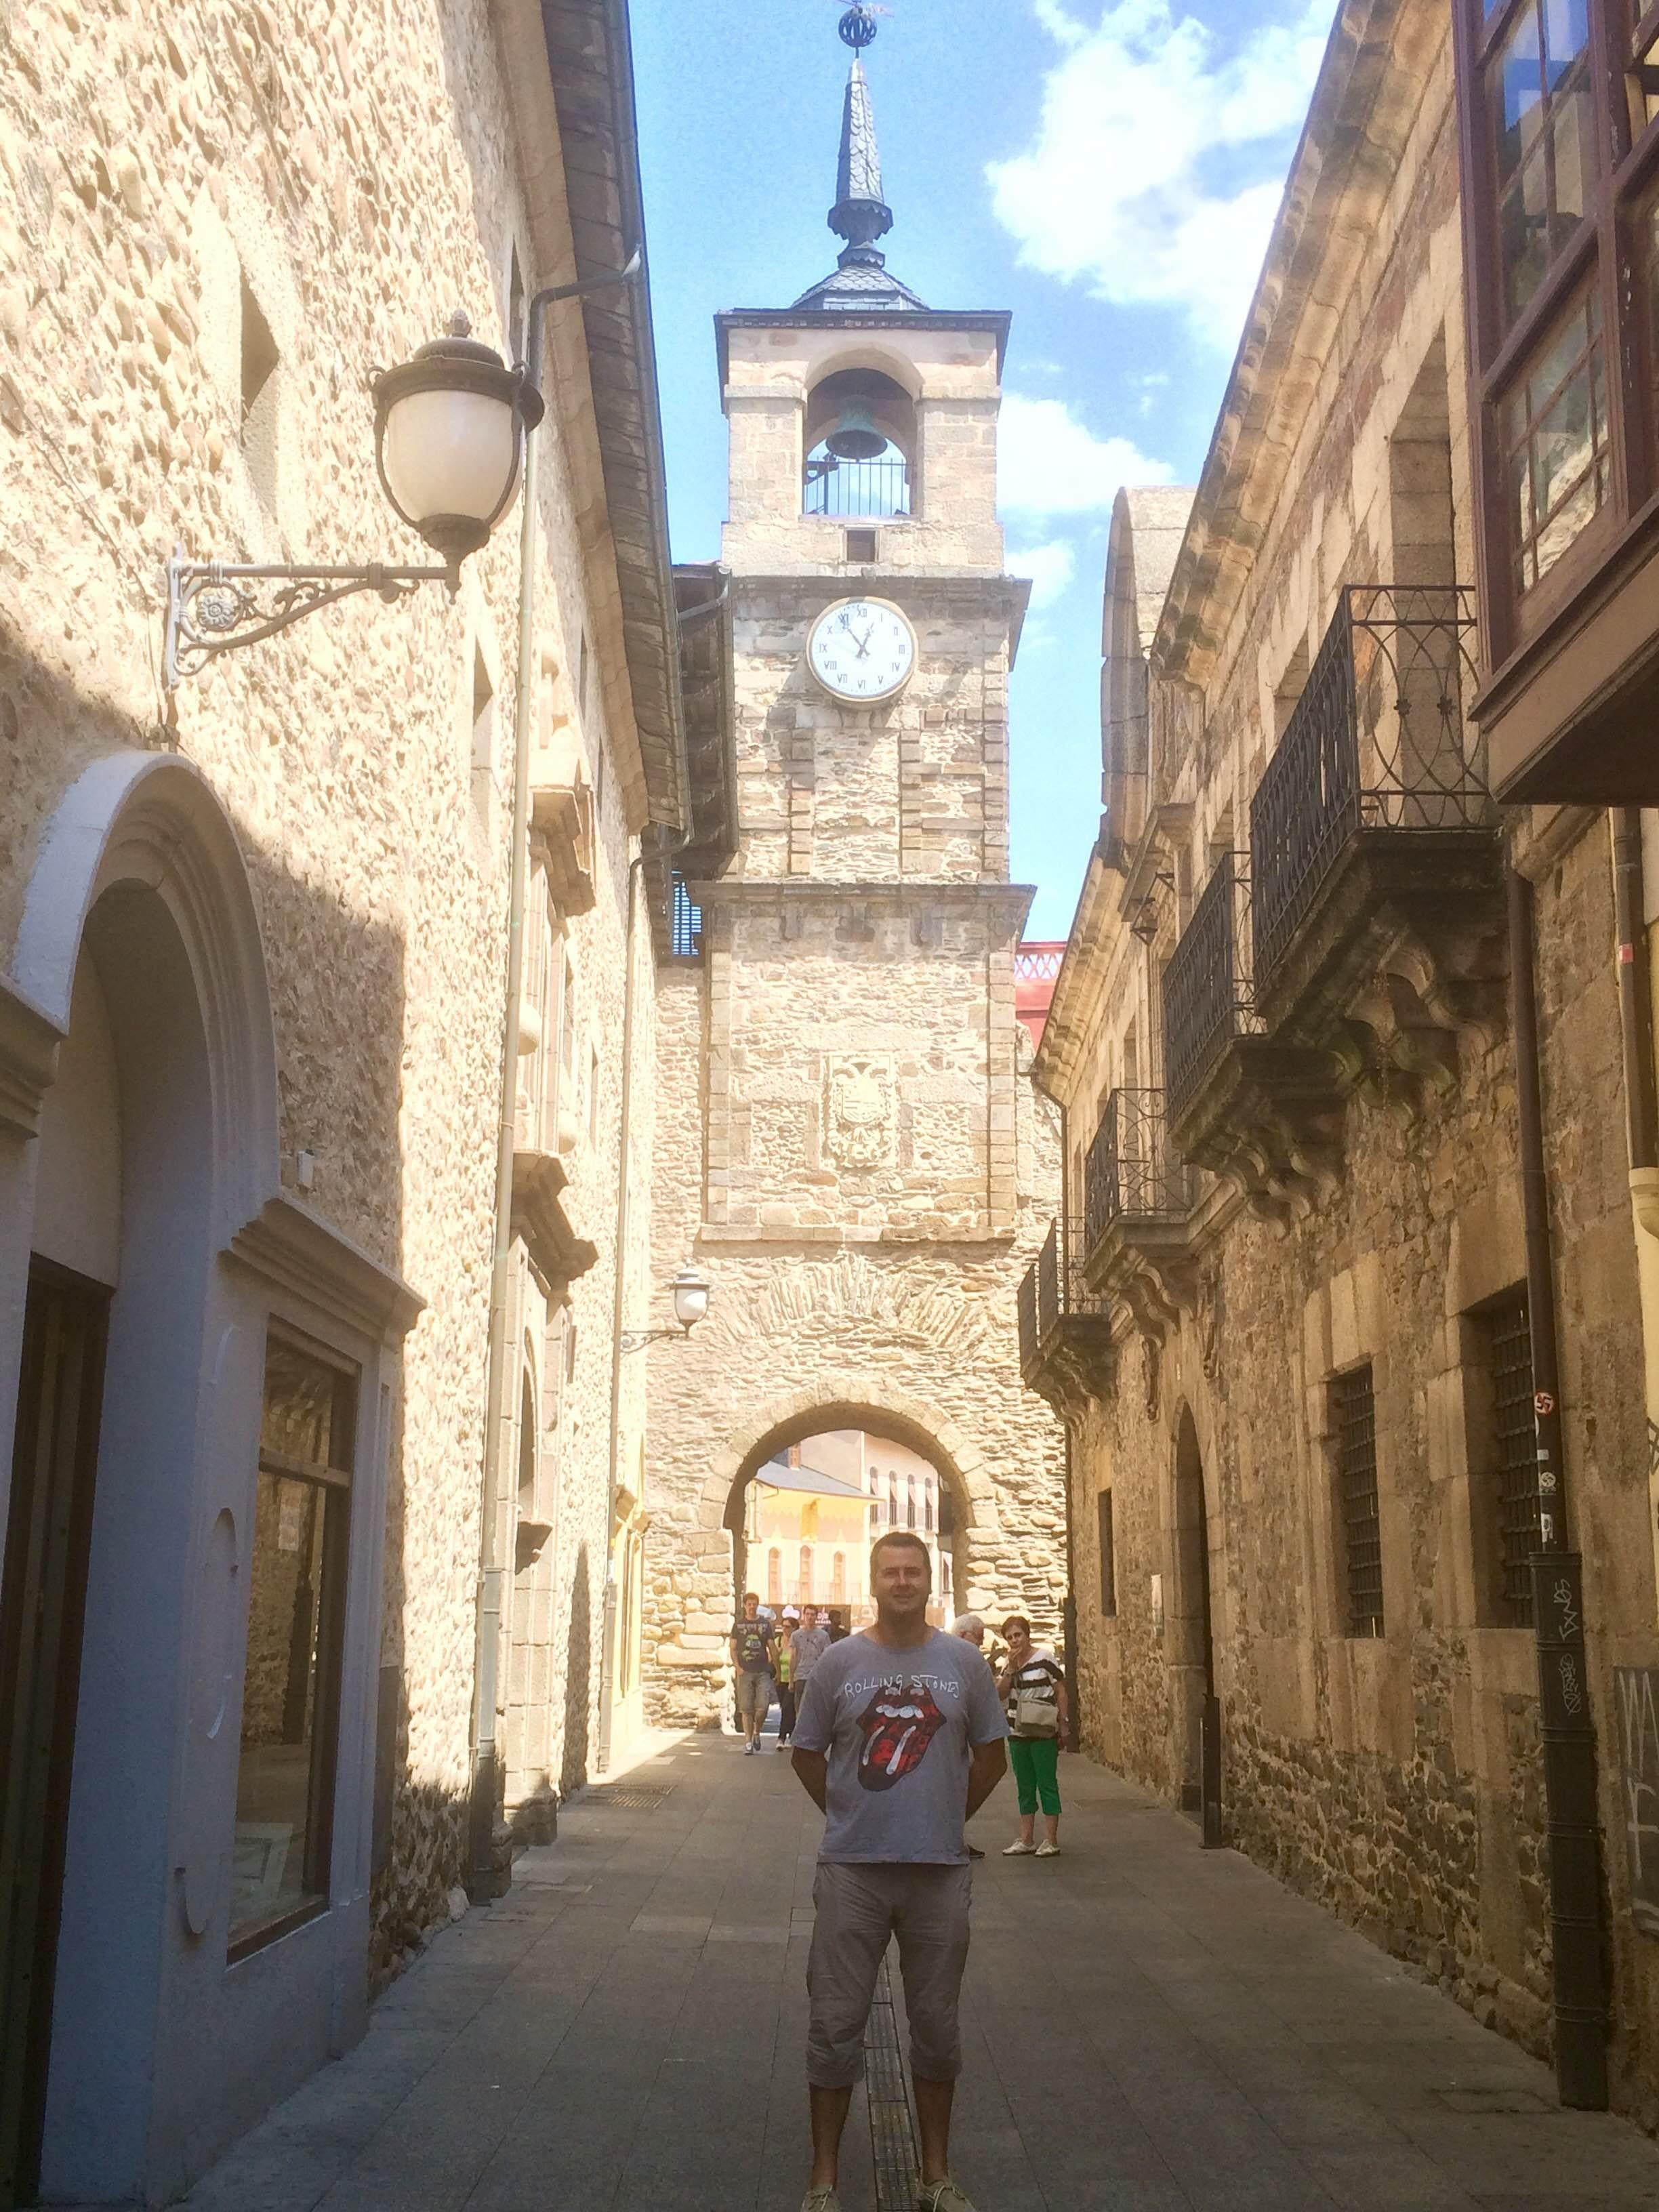 Calle en Plaza Mayor de Ponferrada